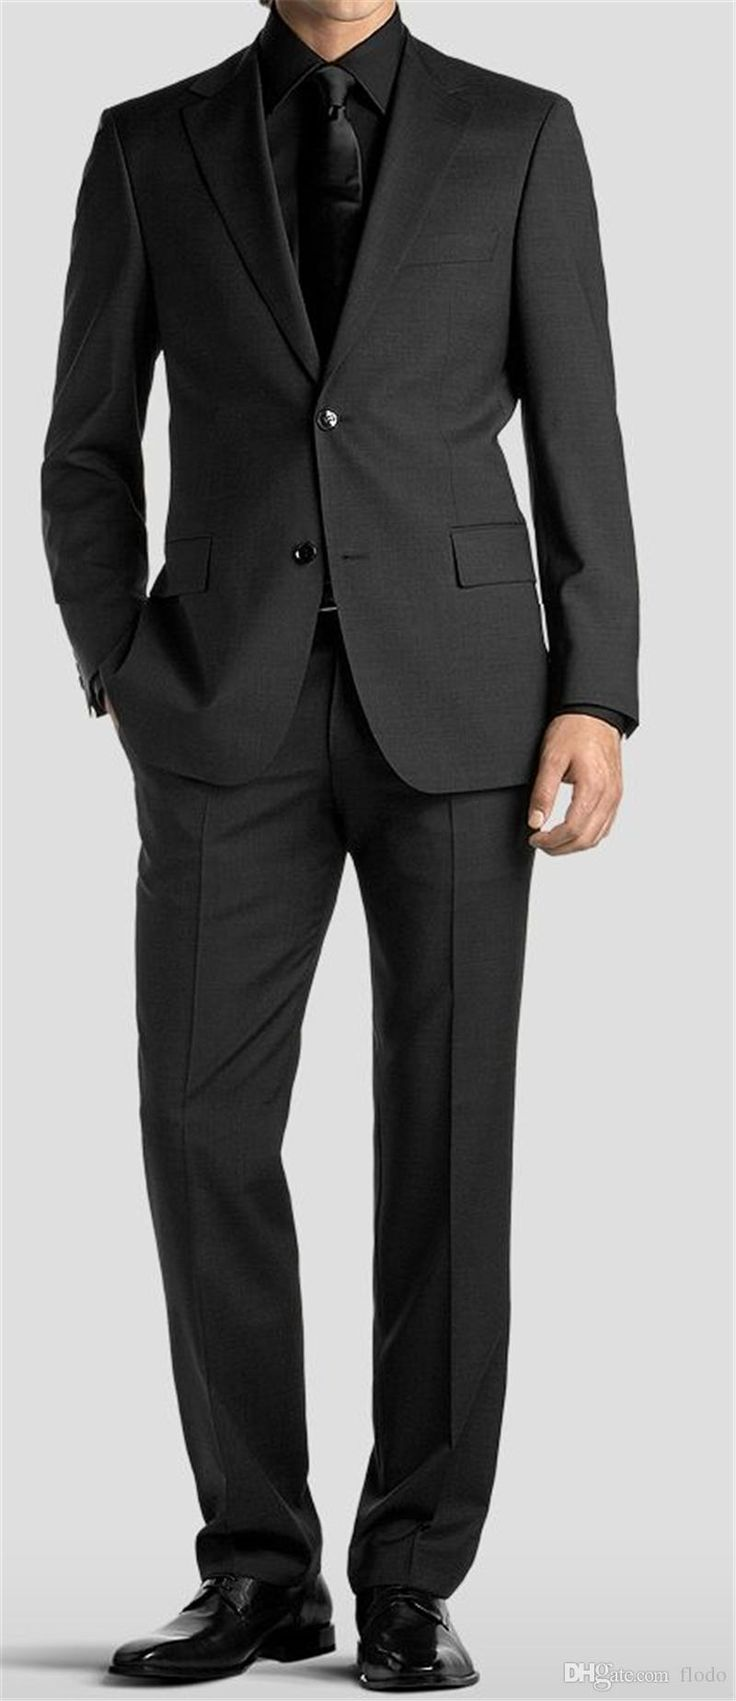 2017 Two Piece Groom Tuxedos For Wedding Party Two Buttons Notched Lapel Black Mens Suits Custom Made Suit+Pants Mens Tuxedo Jackets Mens Tuxedo Styles From Flodo, $69.64| Dhgate.Com